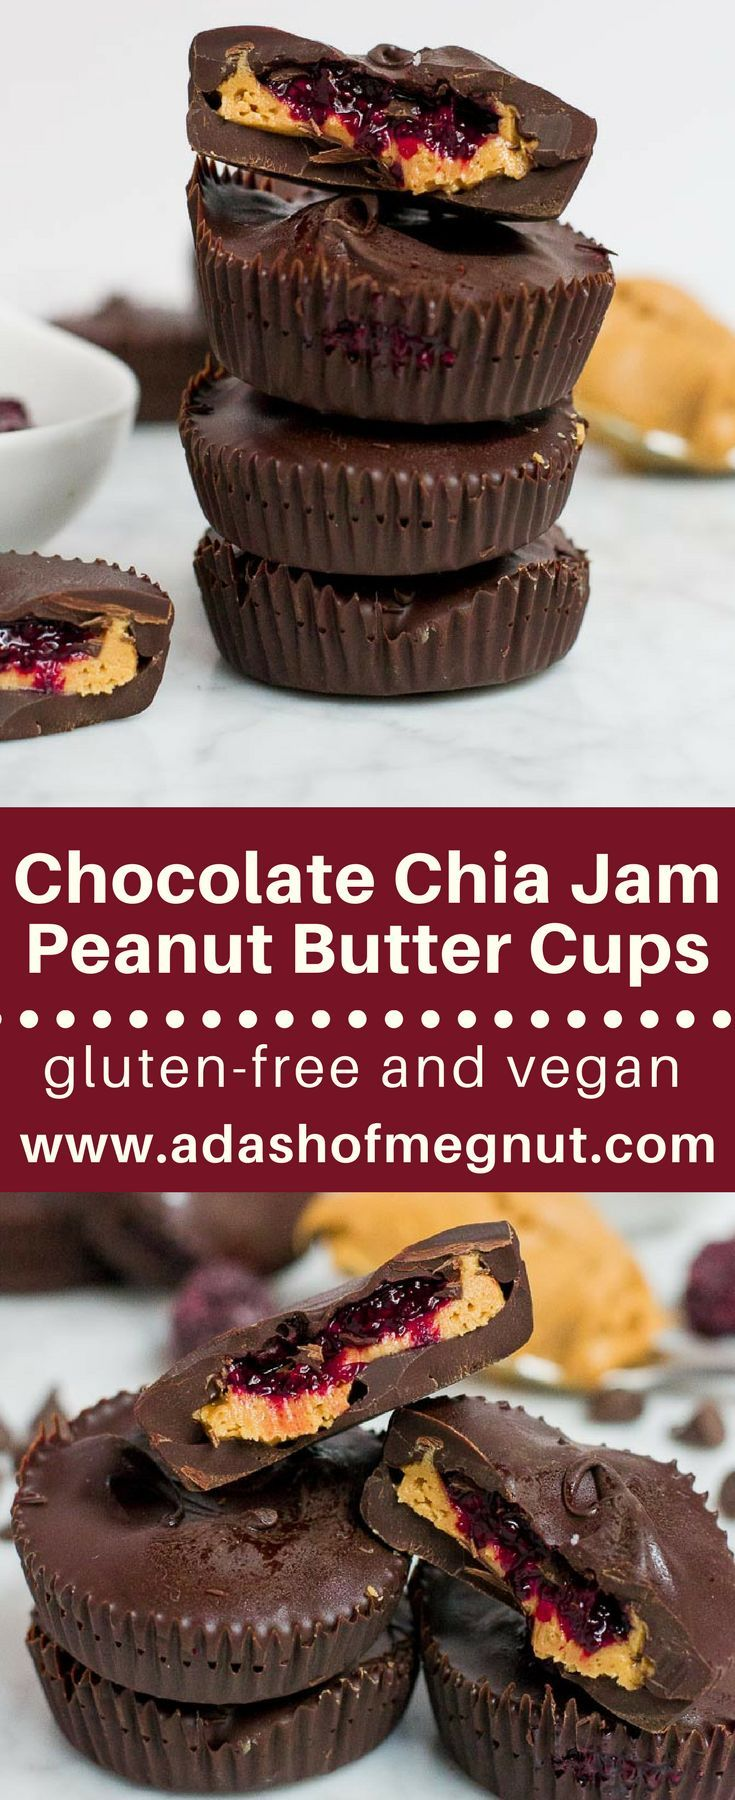 Is there anything better than biting into a chocolate peanut butter cup filled with a luscious mixed berry chia jam? I think not! This quick and easy no-bake dessert comes together with simple ingredients and is ready in under an hour. There is minimal preparation time needed which makes this chocolate chia jam peanut butter cup recipe a favorite for entertaining! It's gluten-free, dairy-free and vegan. #nobake #glutenfree #dairyfree #vegan via @adashofmegnut